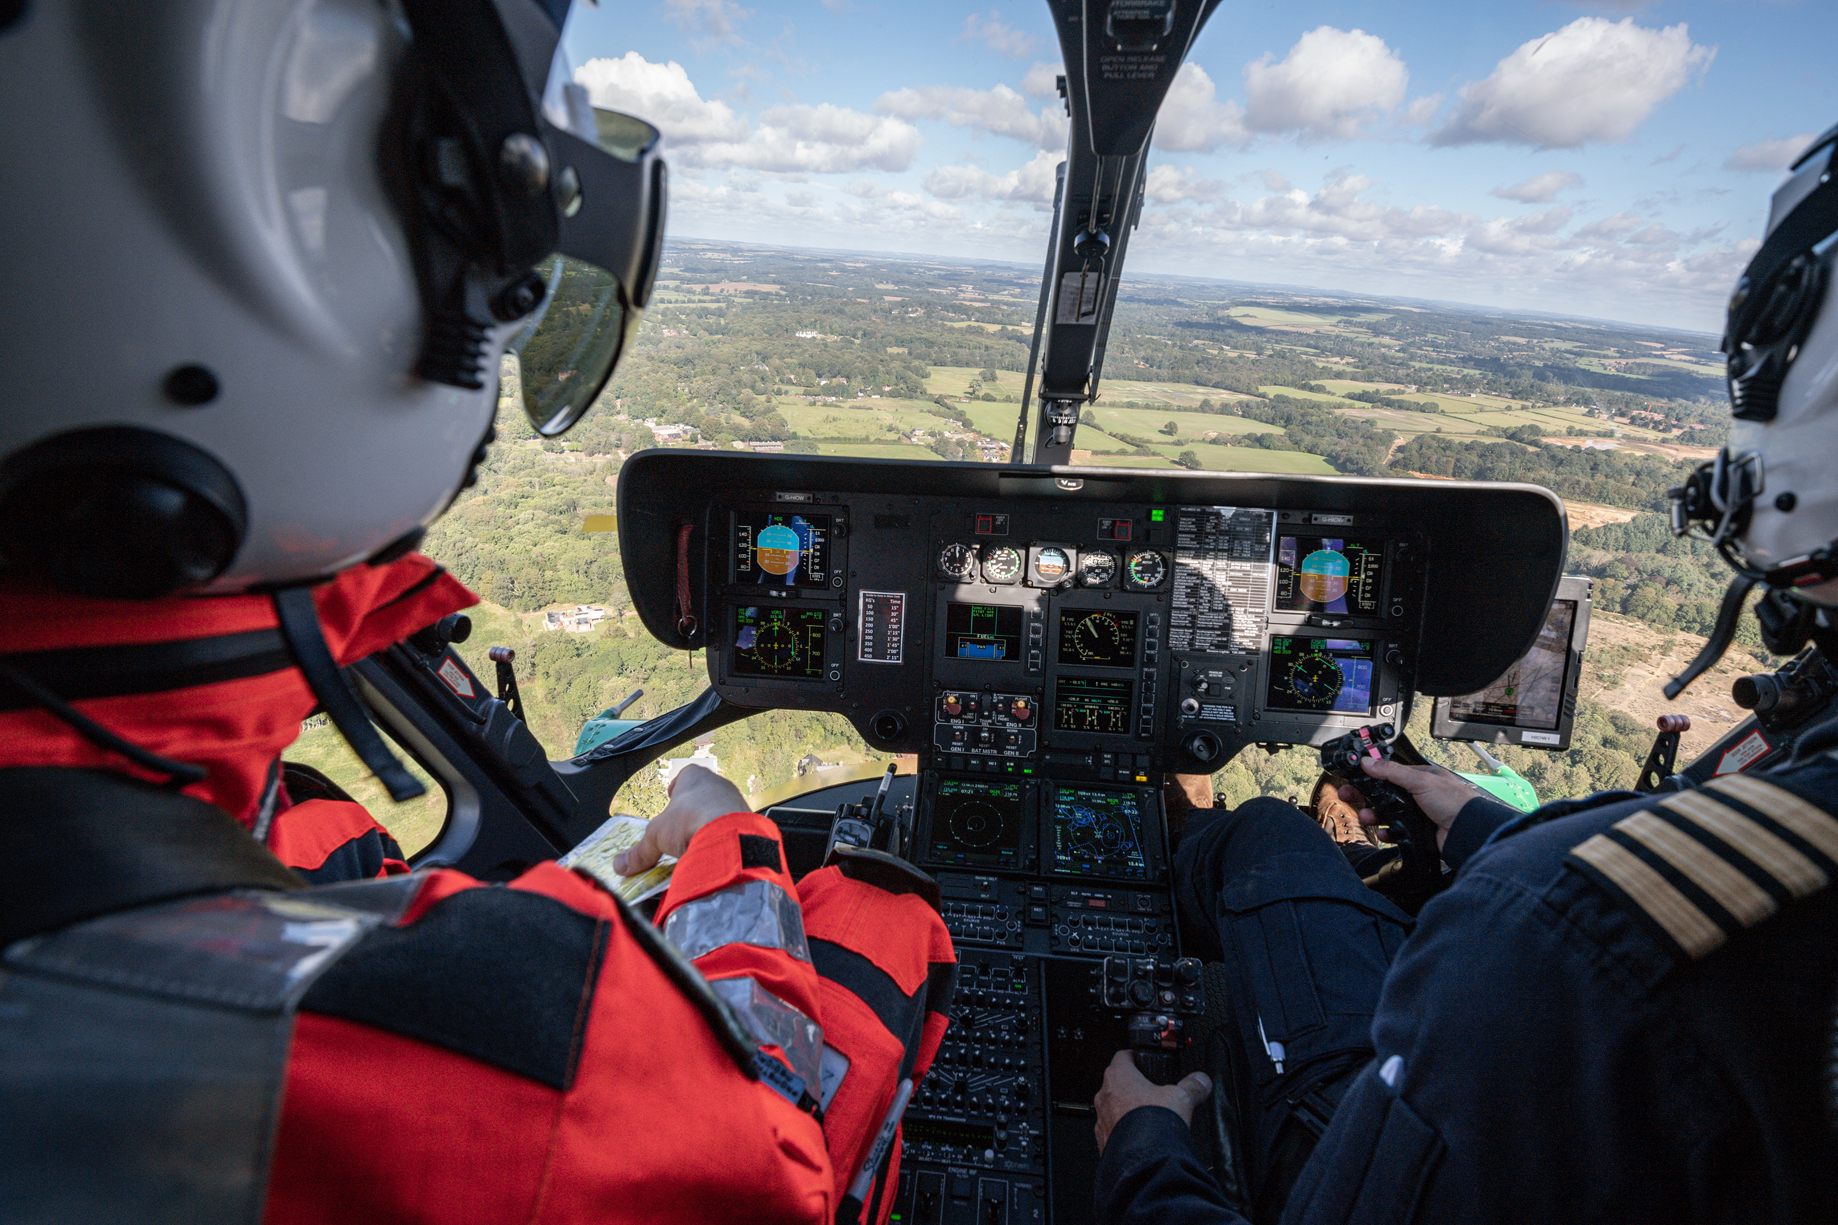 View from the inside of the helicopter looking out of the front. There is a paramedic to the left and the pilot to the right. We are flying over fields.